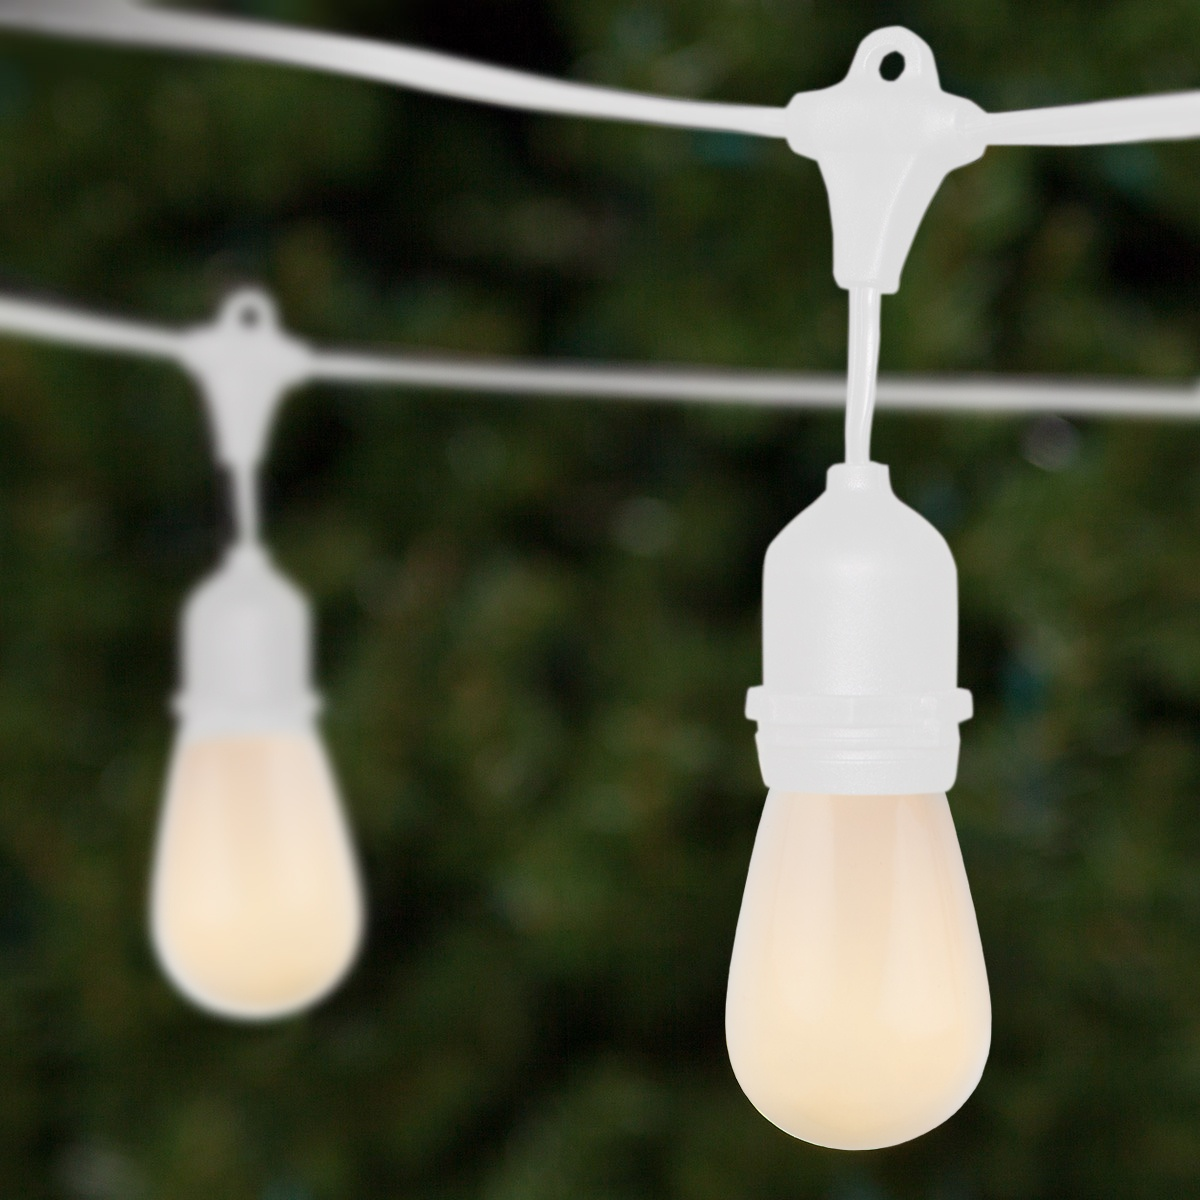 54u0027 Commercial Patio String With 24 Suspended S14 White Outdoor Patio Lights